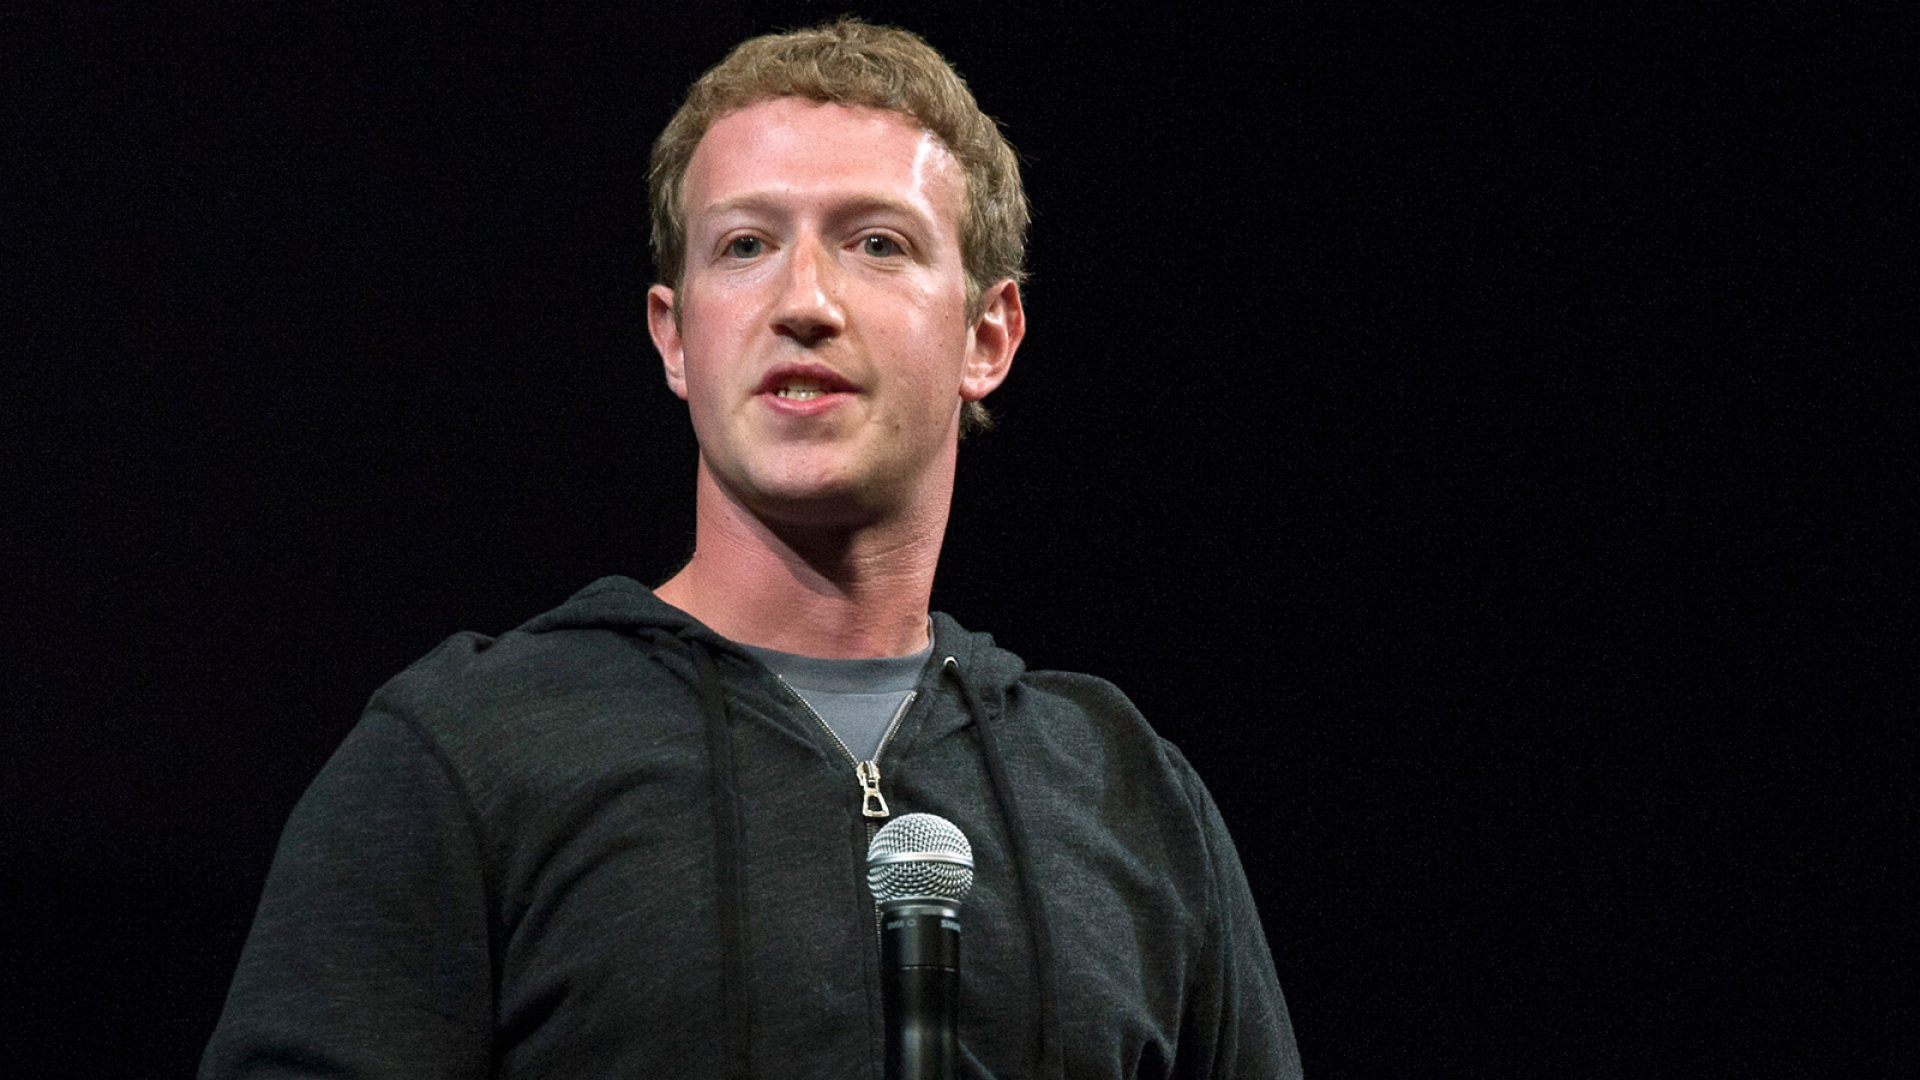 Mark Zuckerberg on WhatsApp, the NSA, and Bringing Internet to the World